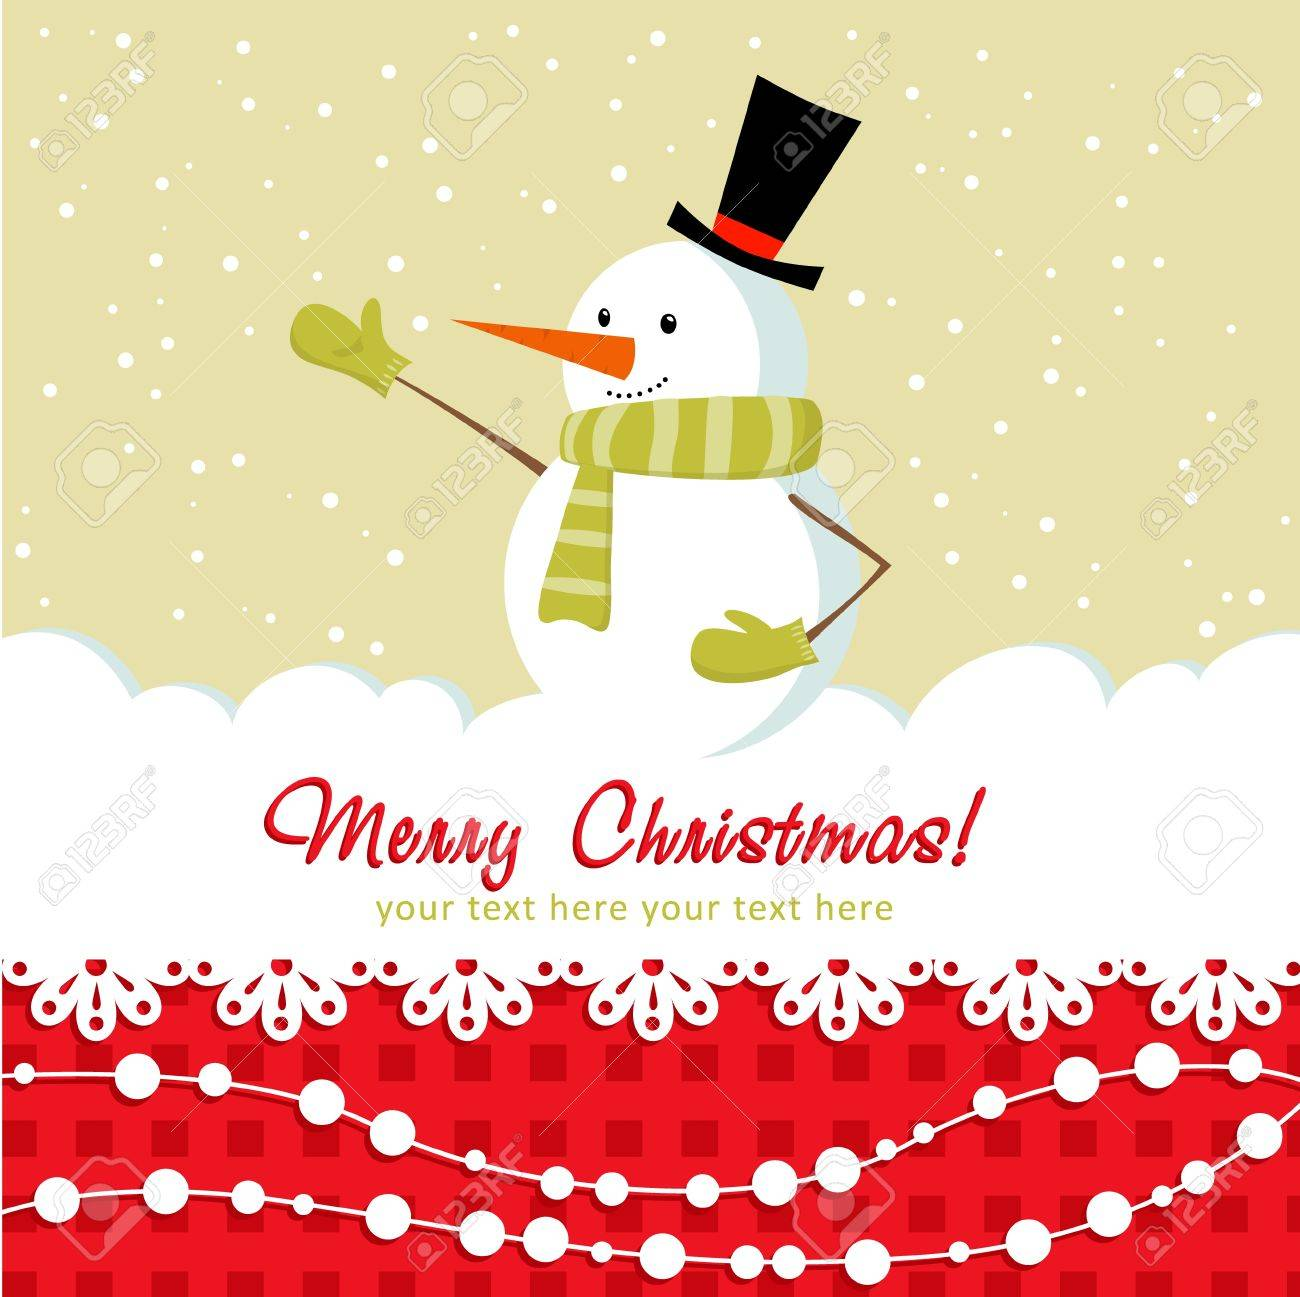 Ornate Christmas card with doodle snowman and decorative lace Stock Vector - 11591492